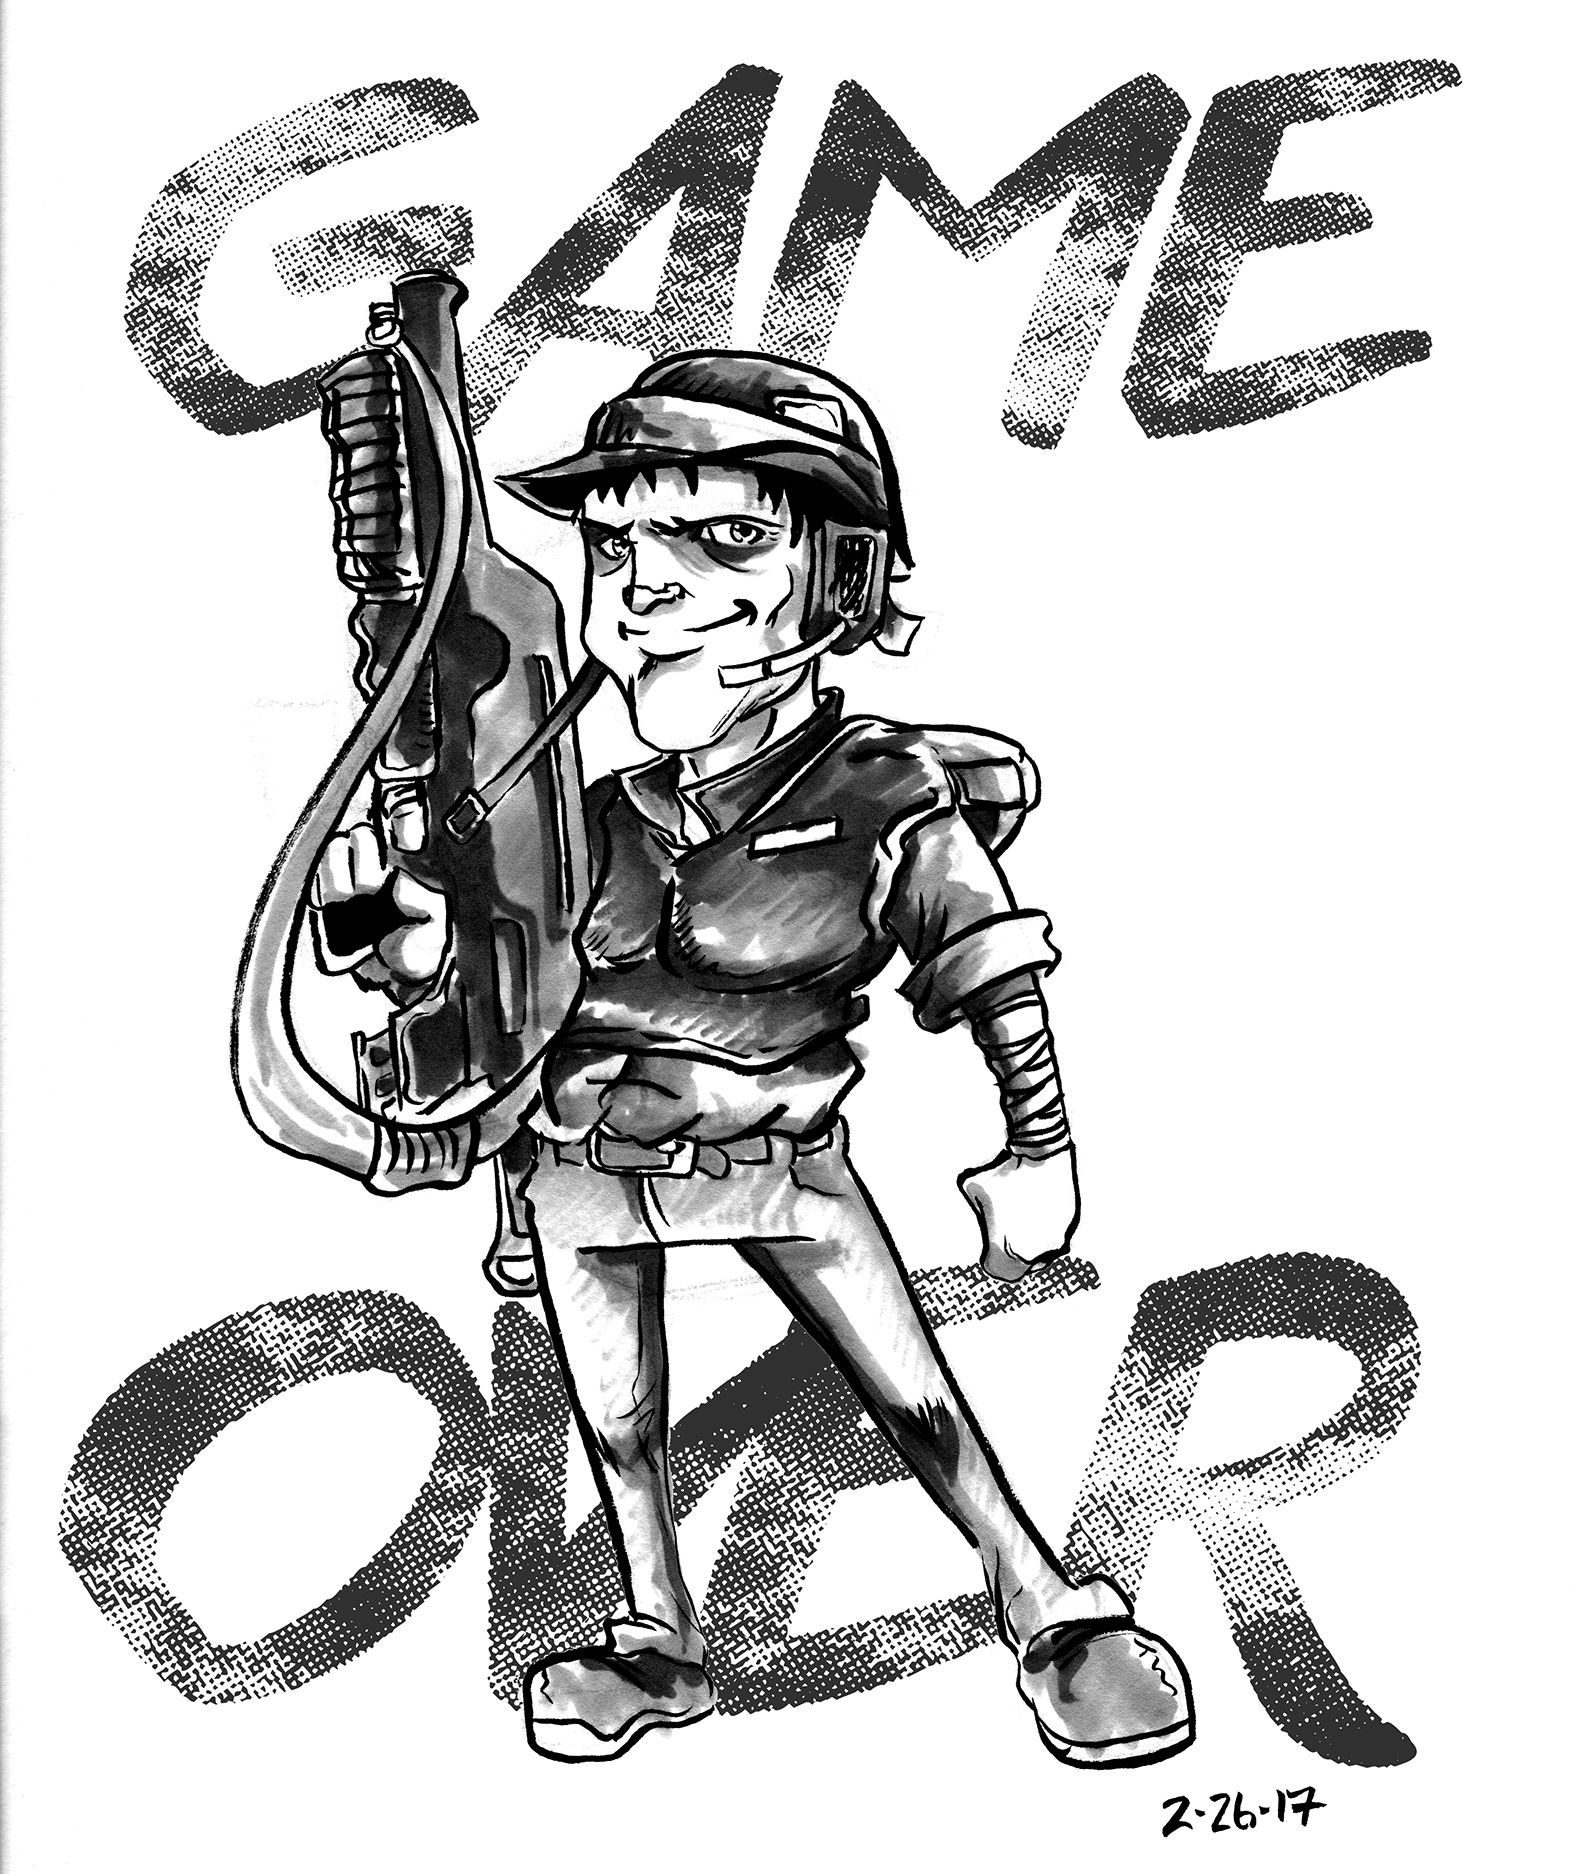 073 – Game Over